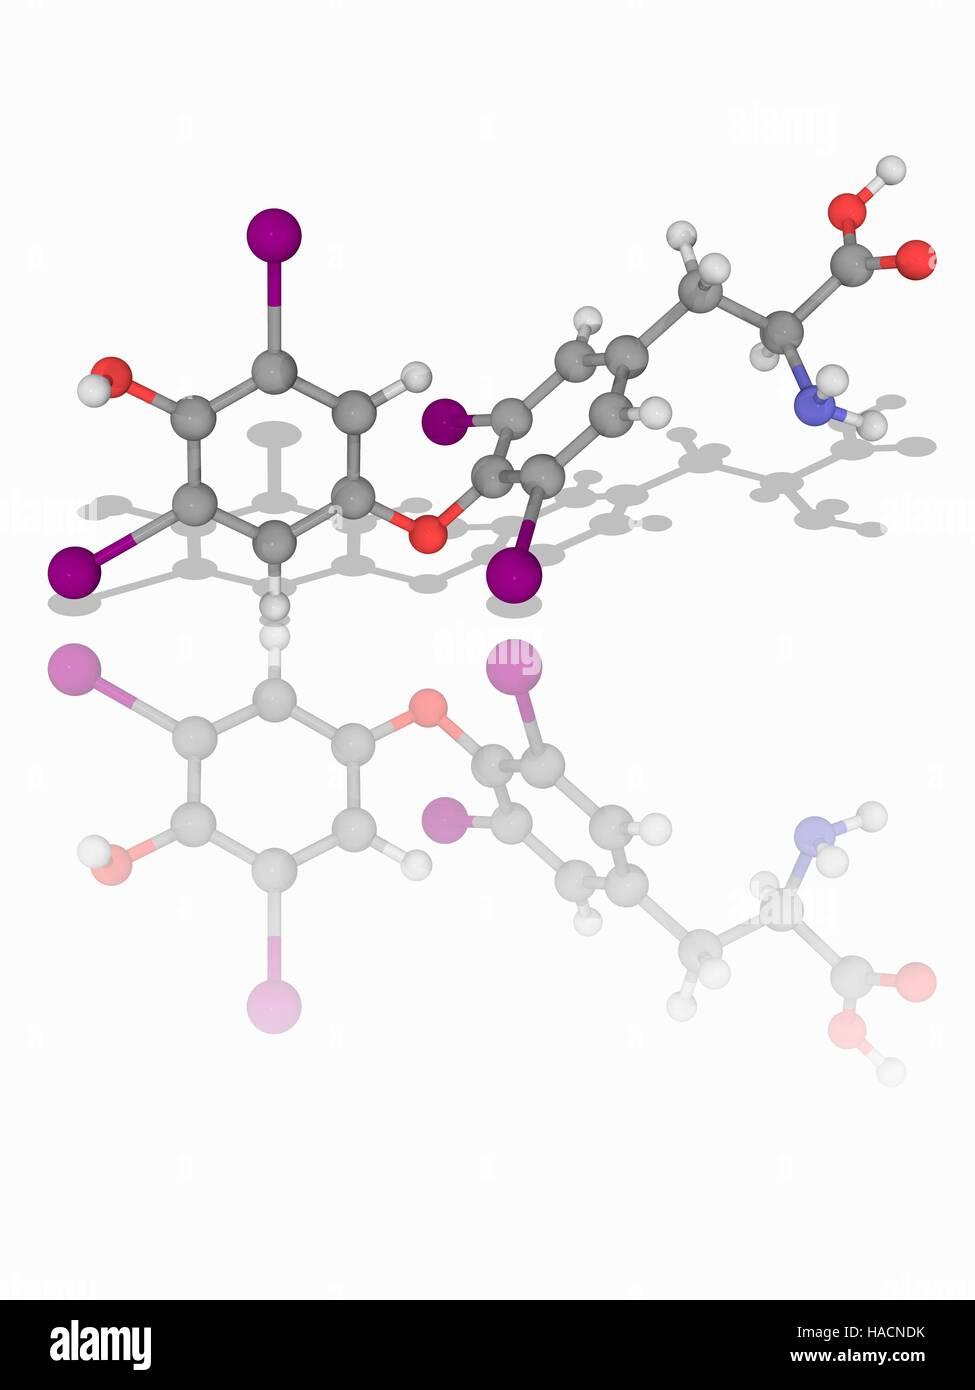 Levothyroxine Molecular Model Of The Drug Levothyroxine Stock